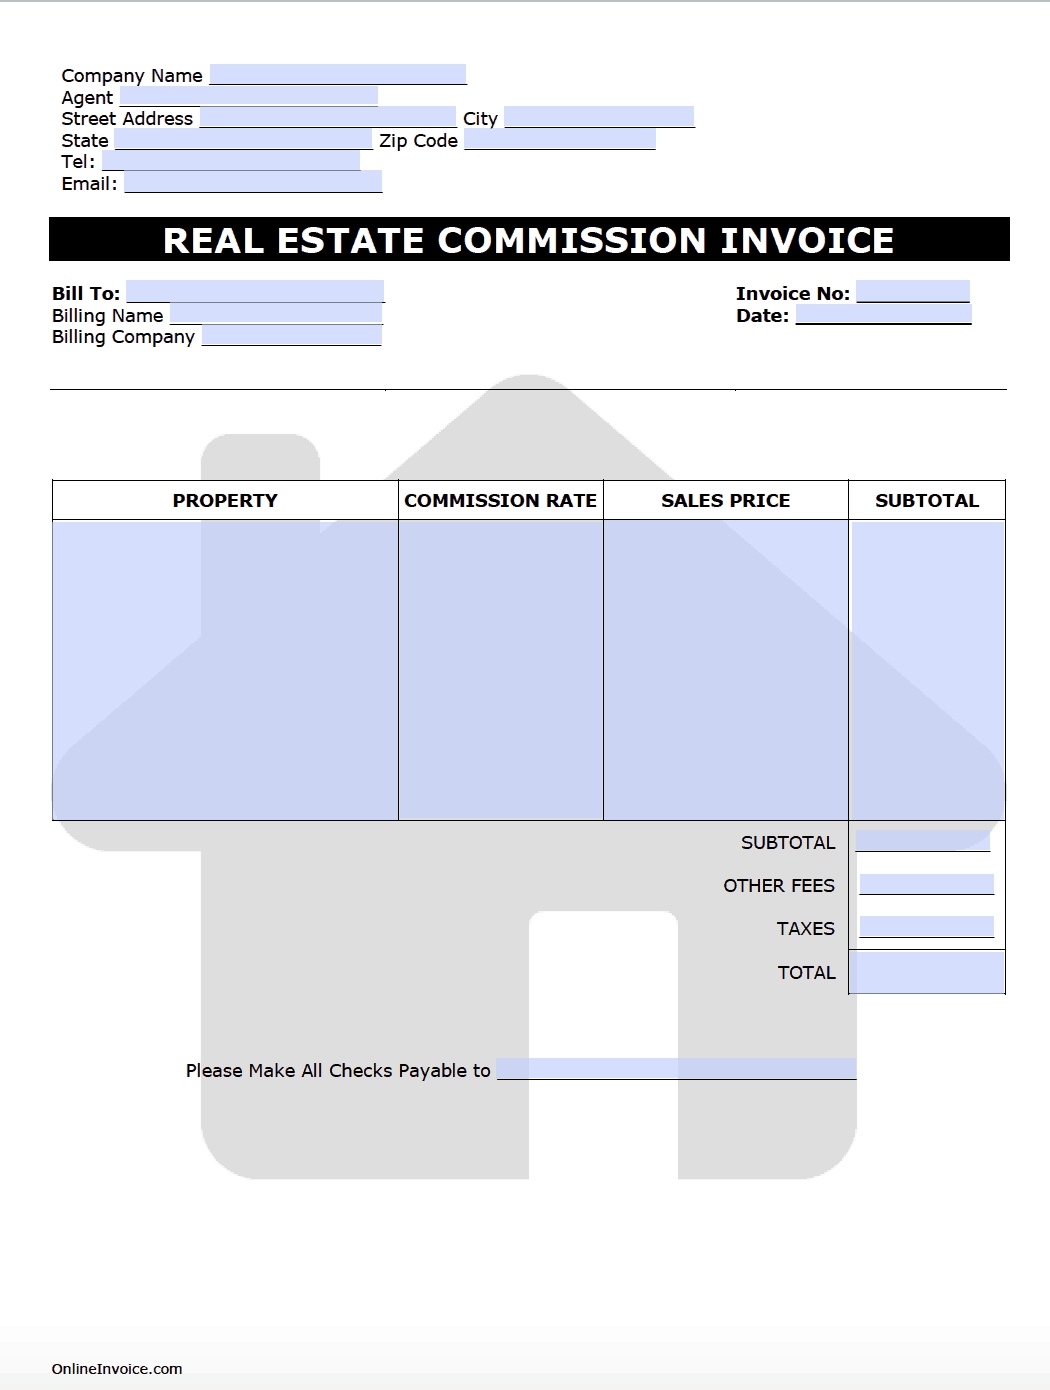 real estate commission invoice template onlineinvoice real estate broker invoice